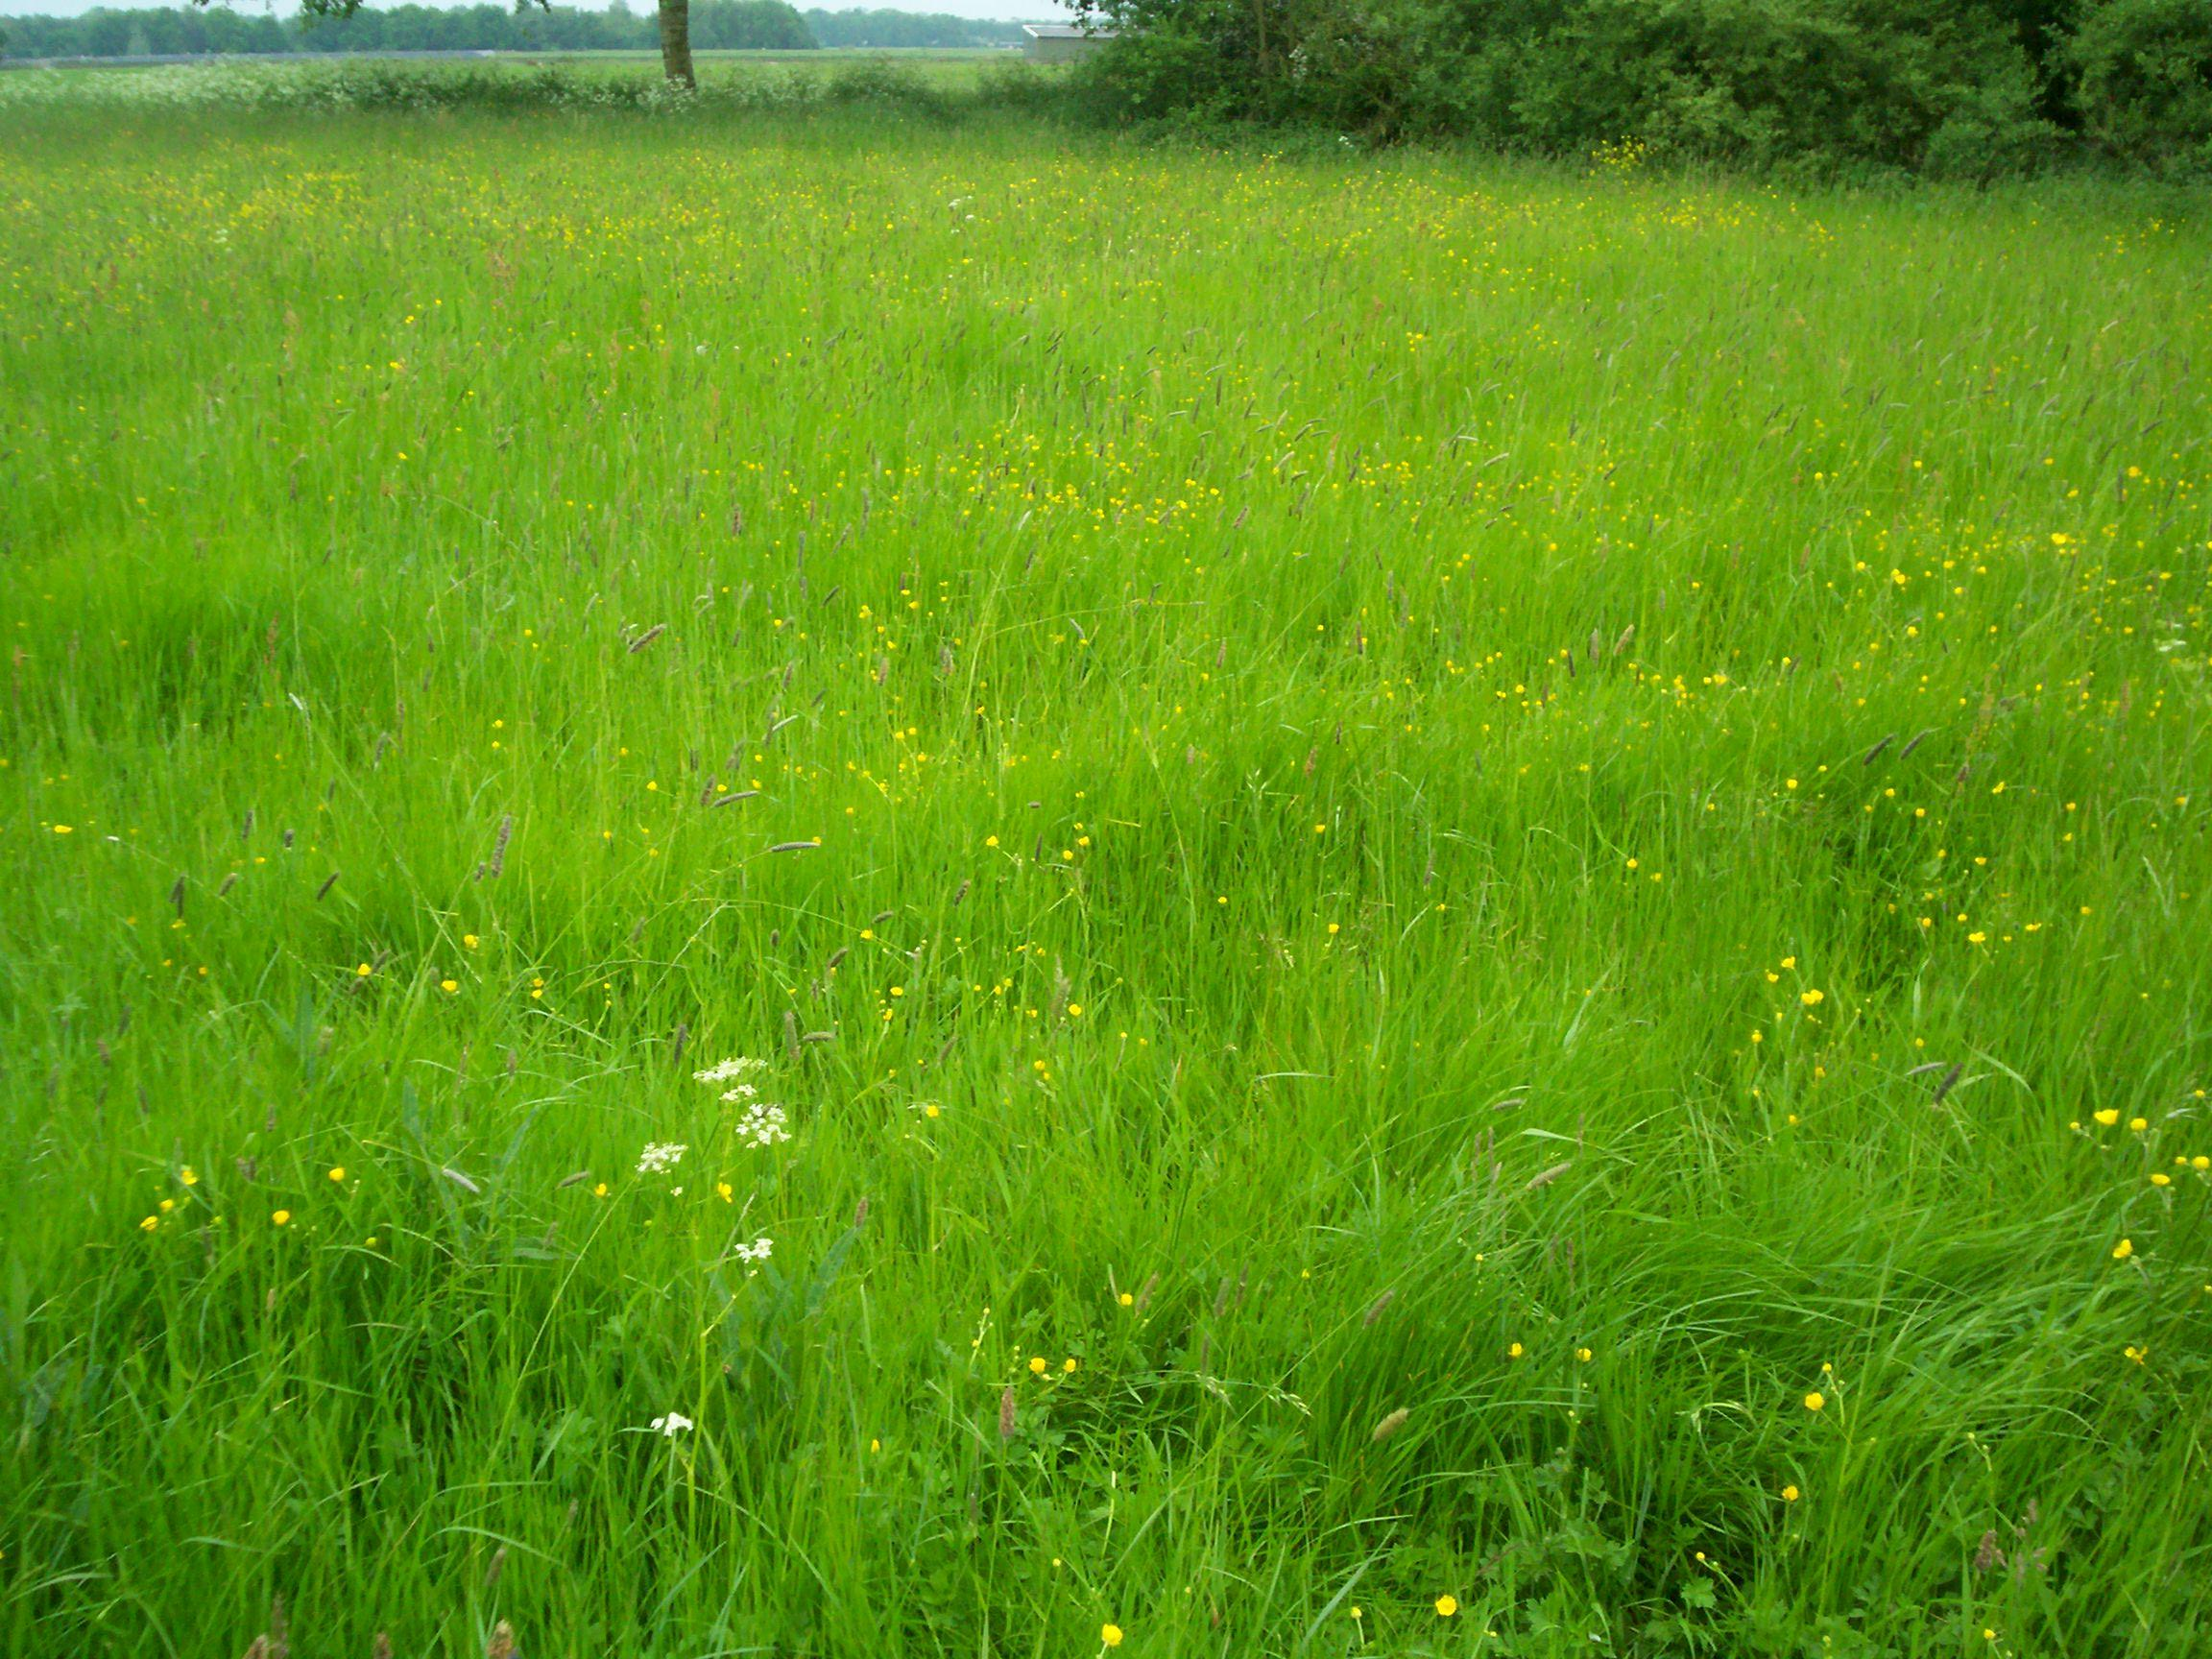 File:Unmowed grassfield in May.JPG - Wikimedia Commons